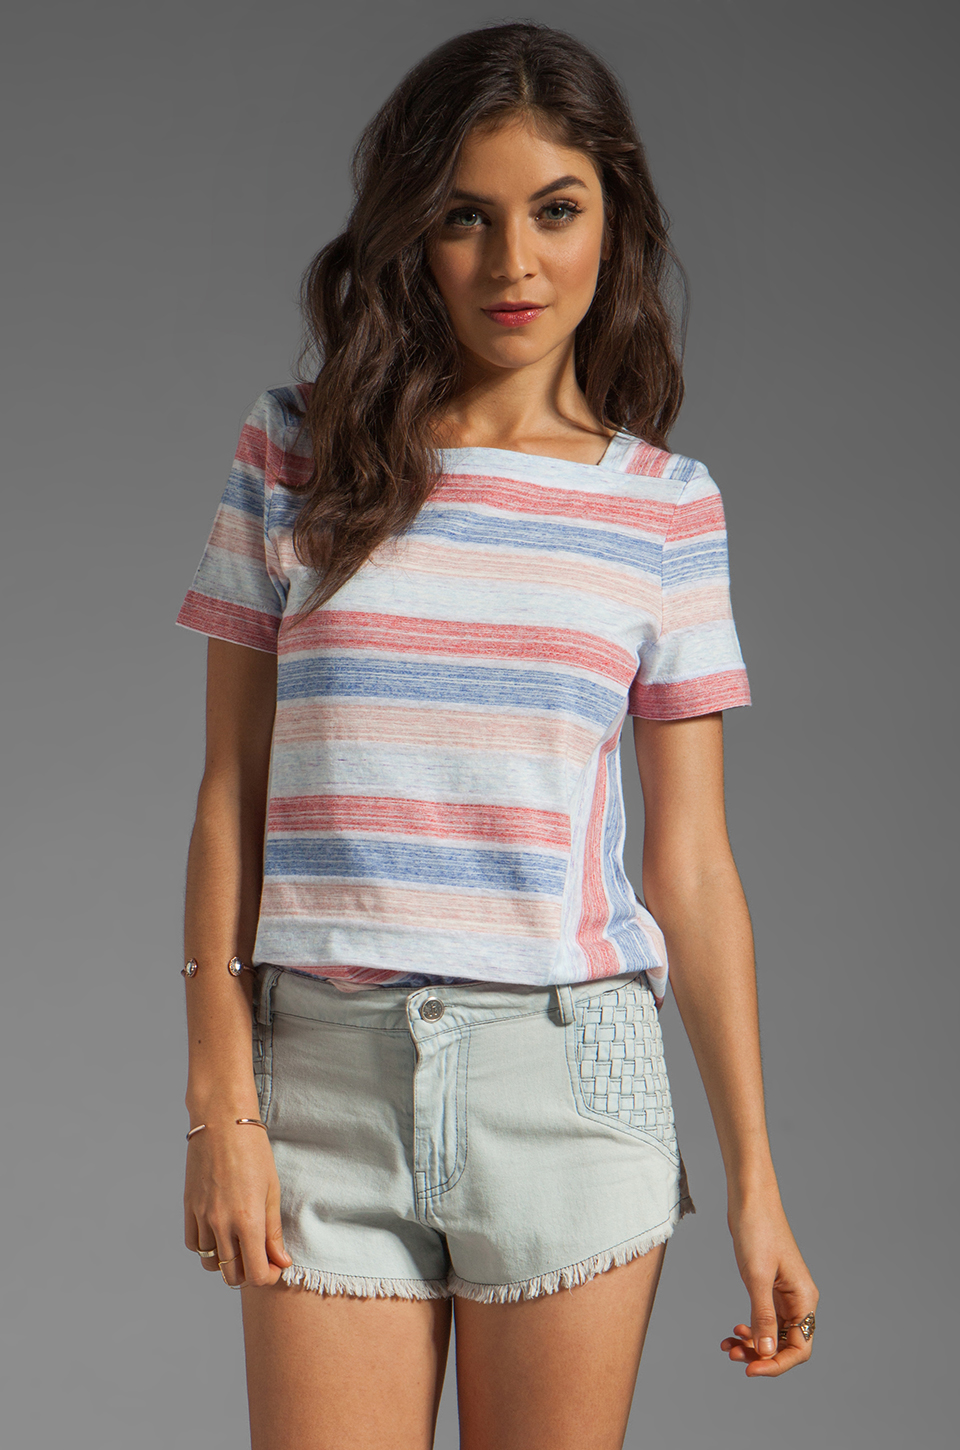 Marc by Marc Jacobs Sketch Stripe Top in Lipstick Red Multi